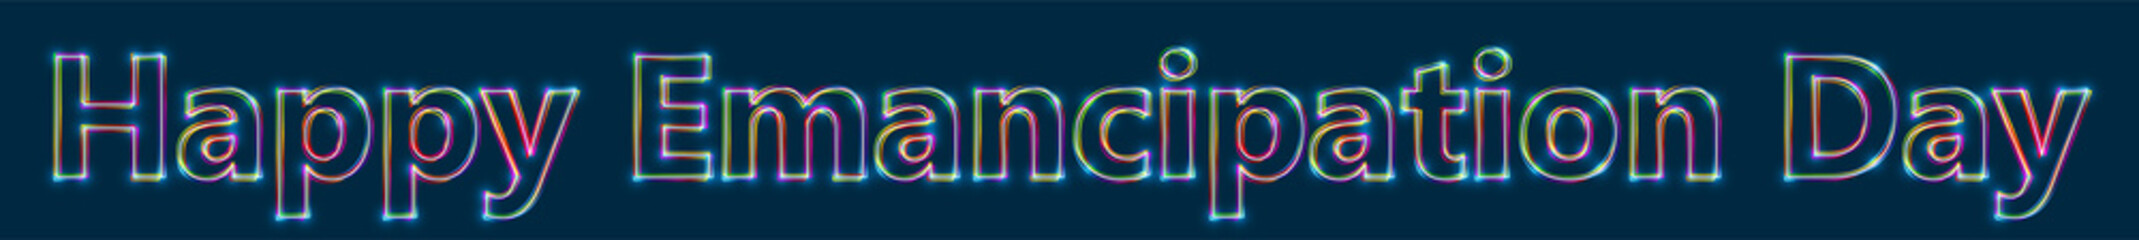 Happy Emancipation Day - Colorful multi-layered outline text with glowing light effect on blue background.